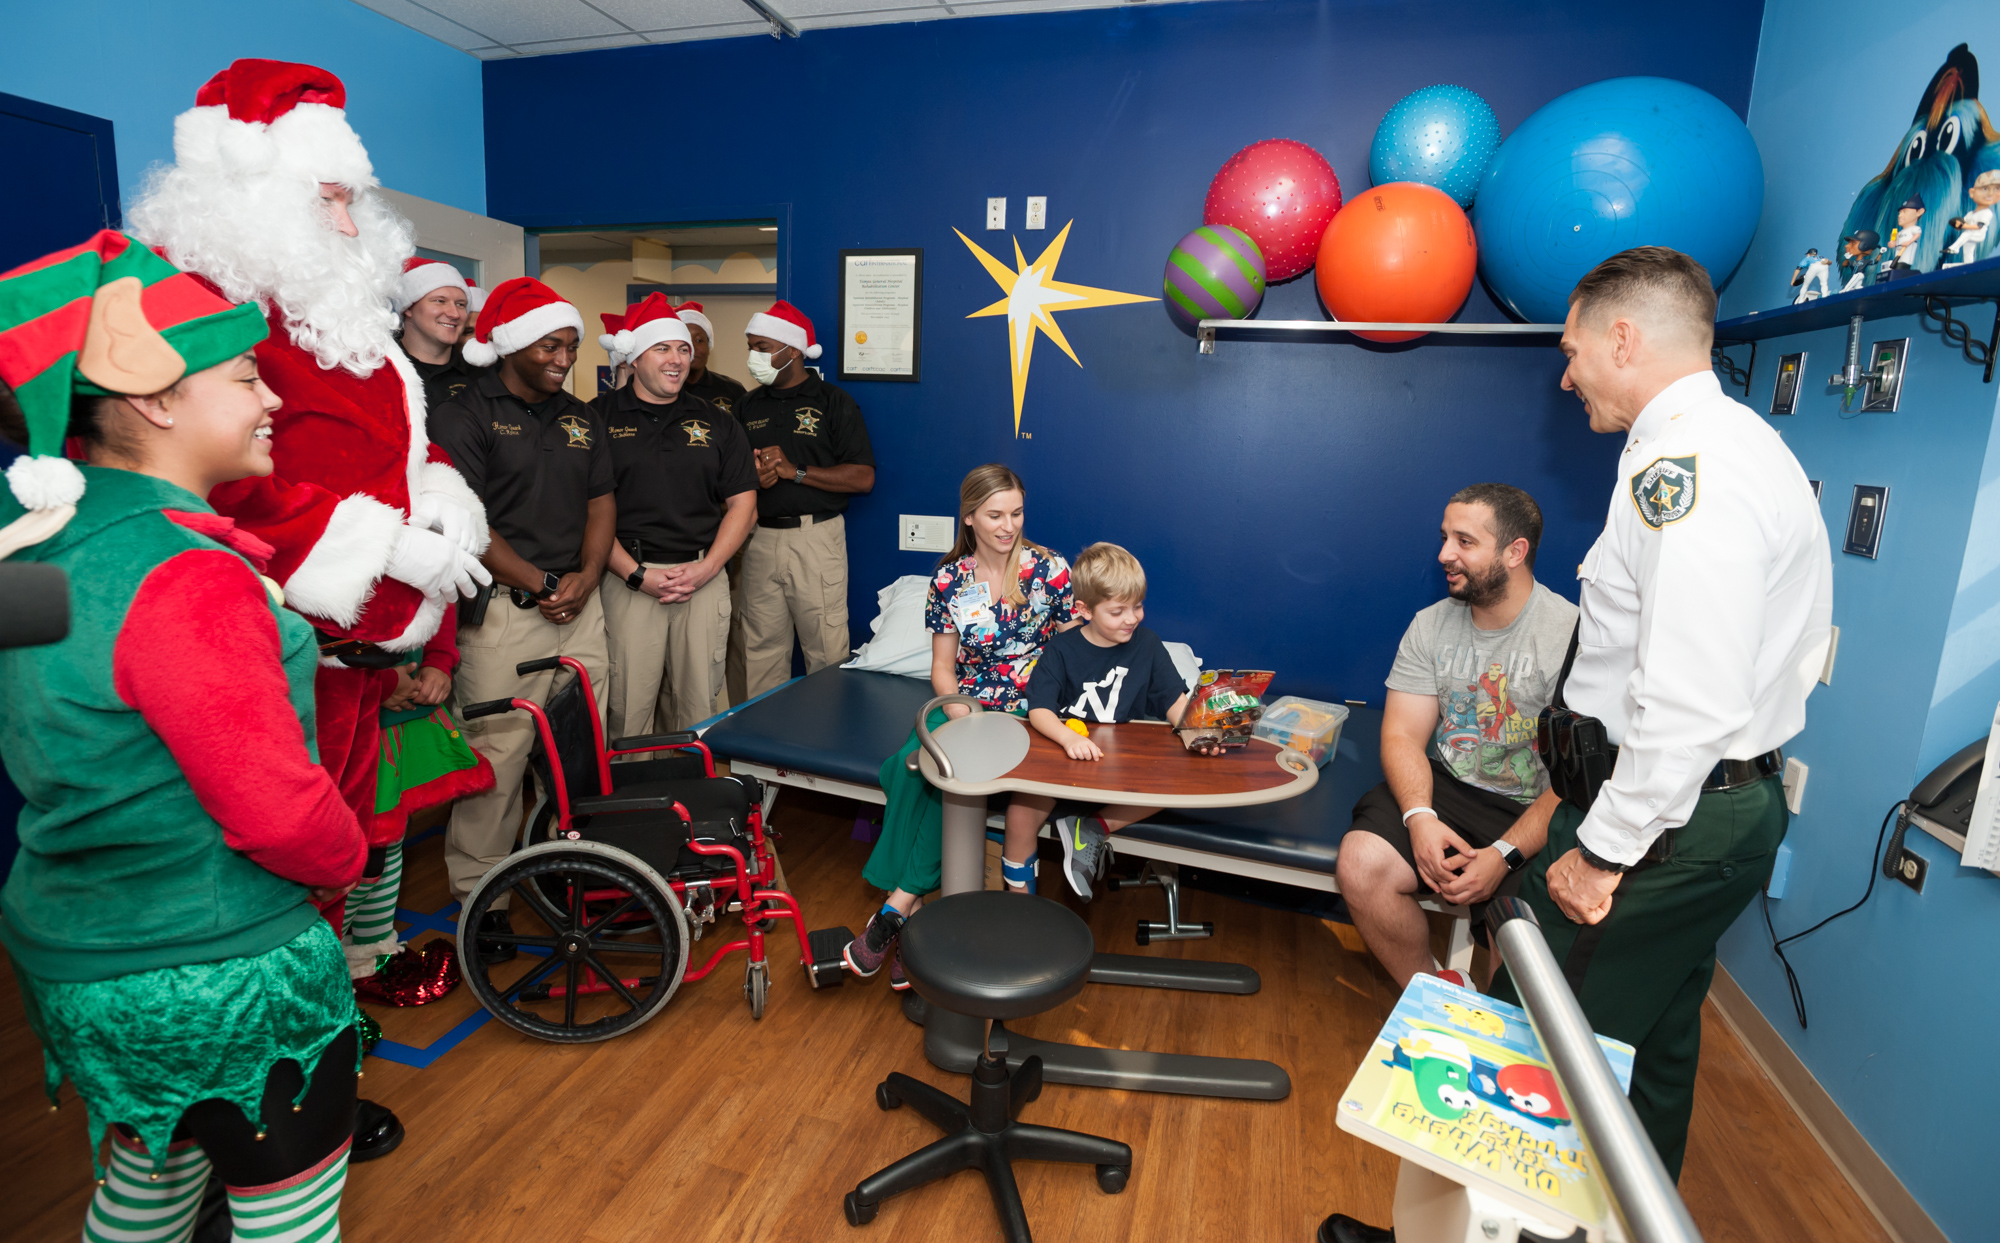 Hillsborough County Sheriff's Office visiting the Children's Medical Center